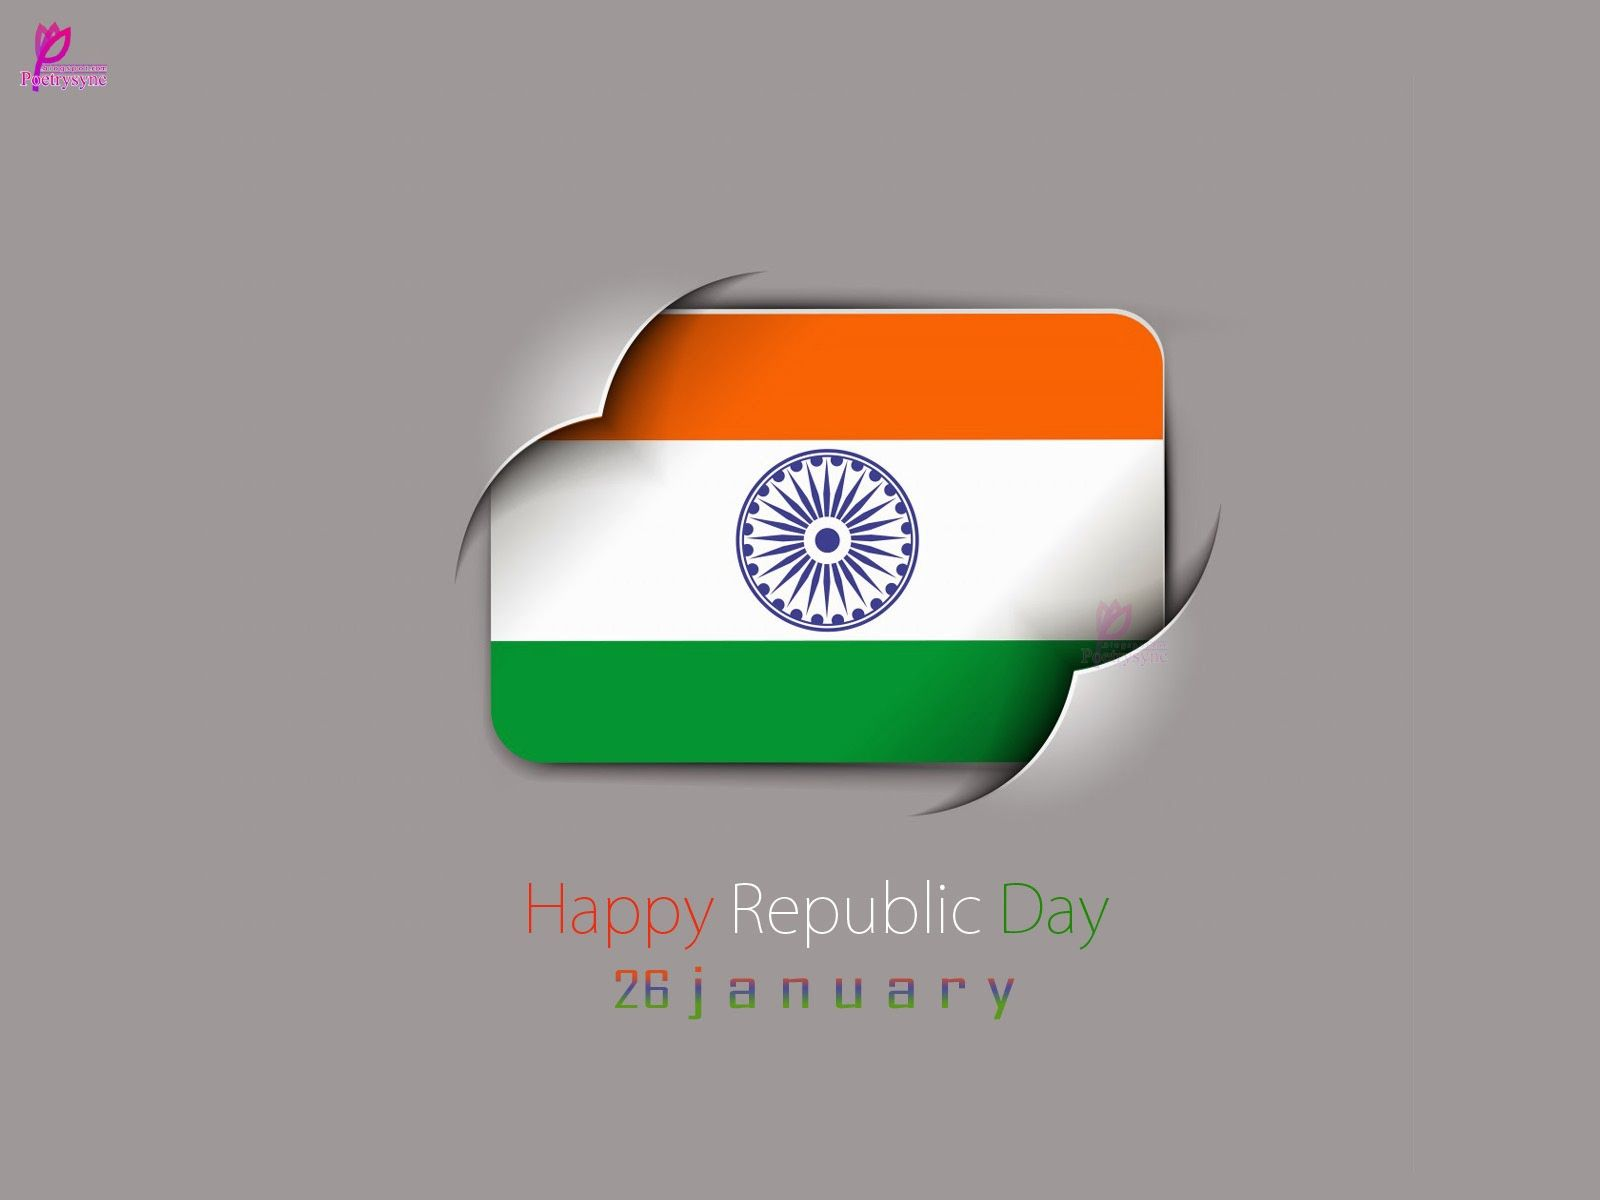 Republic day greetings card picture and 26 january in indian nation republic day greetings card picture and 26 january in indian nation sms quotes messages image wallpaper kristyandbryce Images